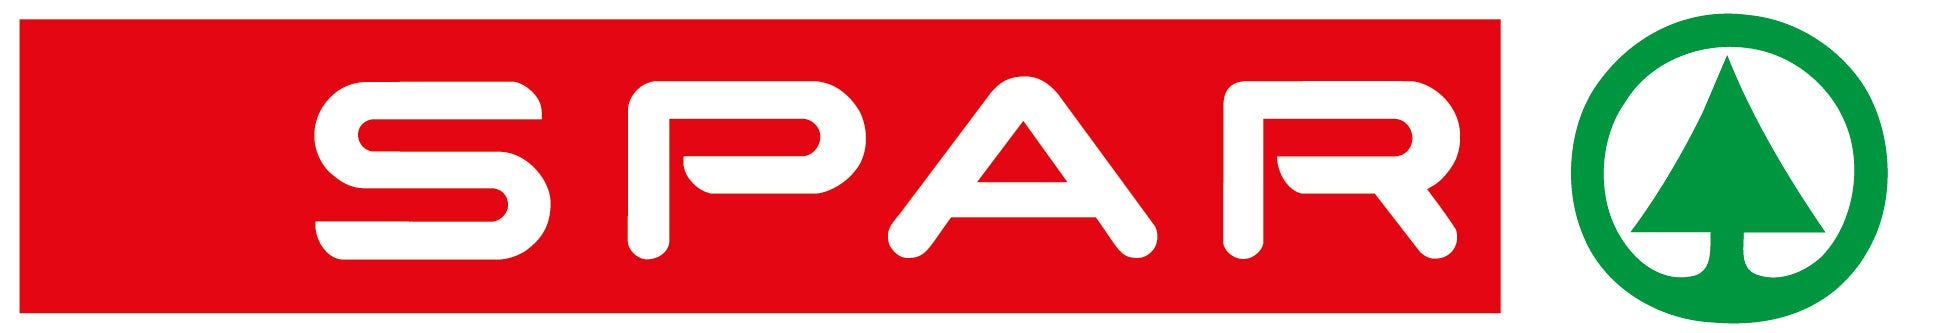 spar, czech republic logo